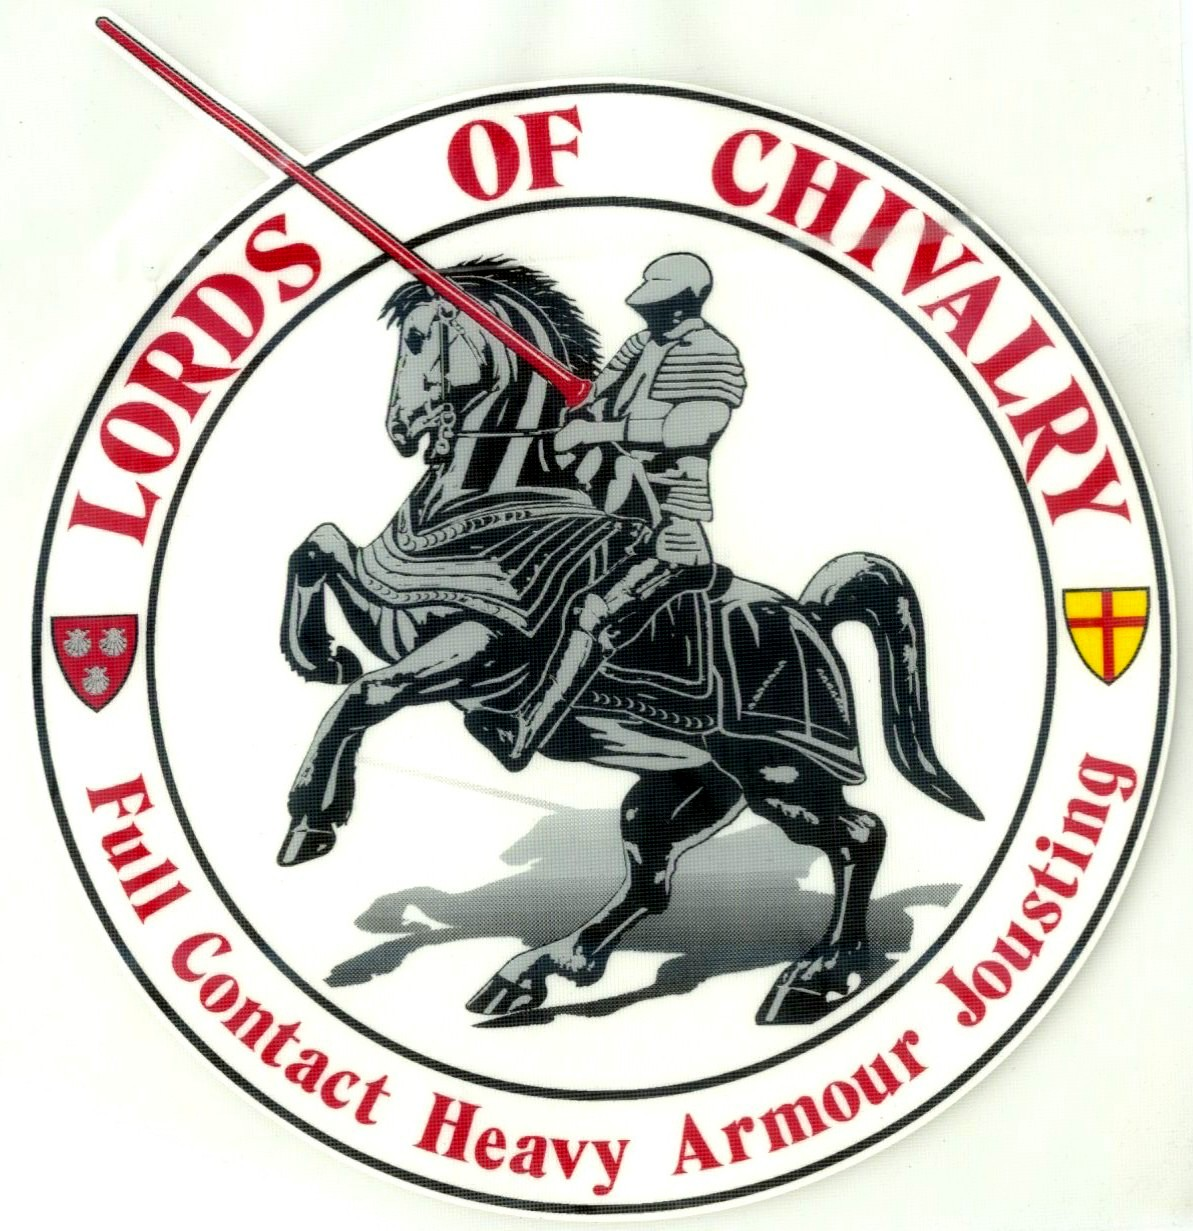 Lords of Chivalry